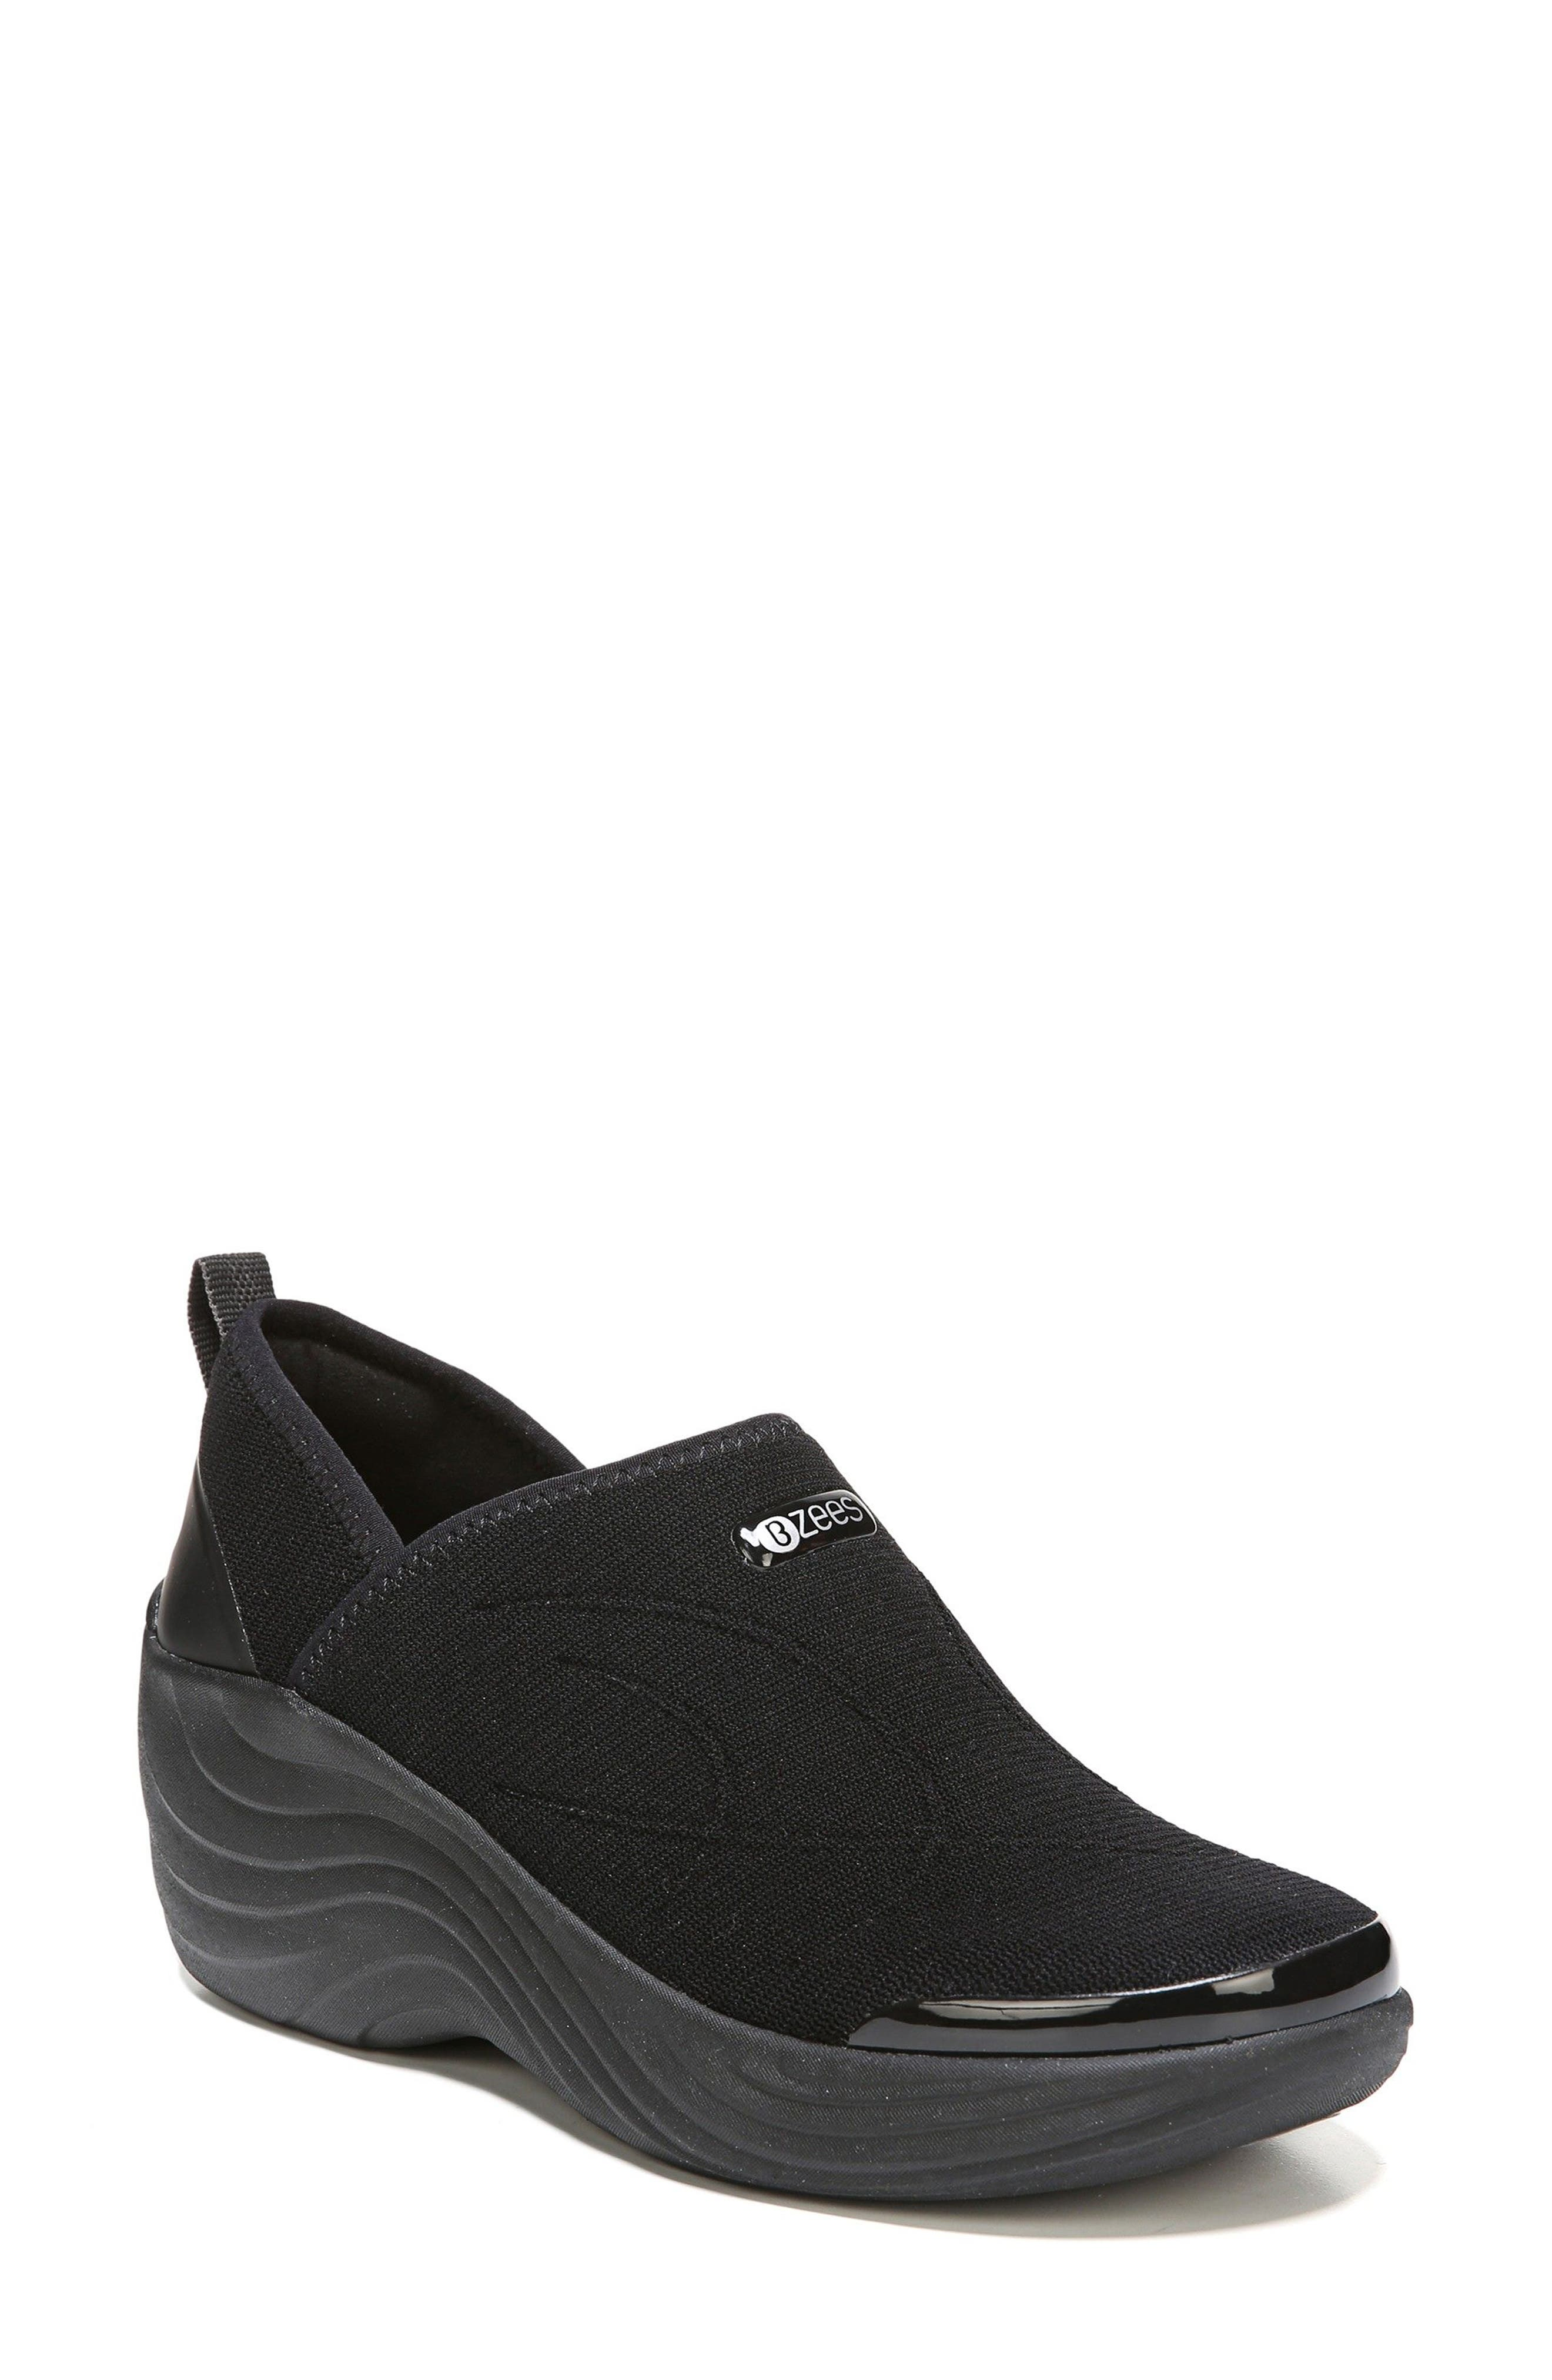 BZees Zsa Zsa Wedge Sneaker (Women)